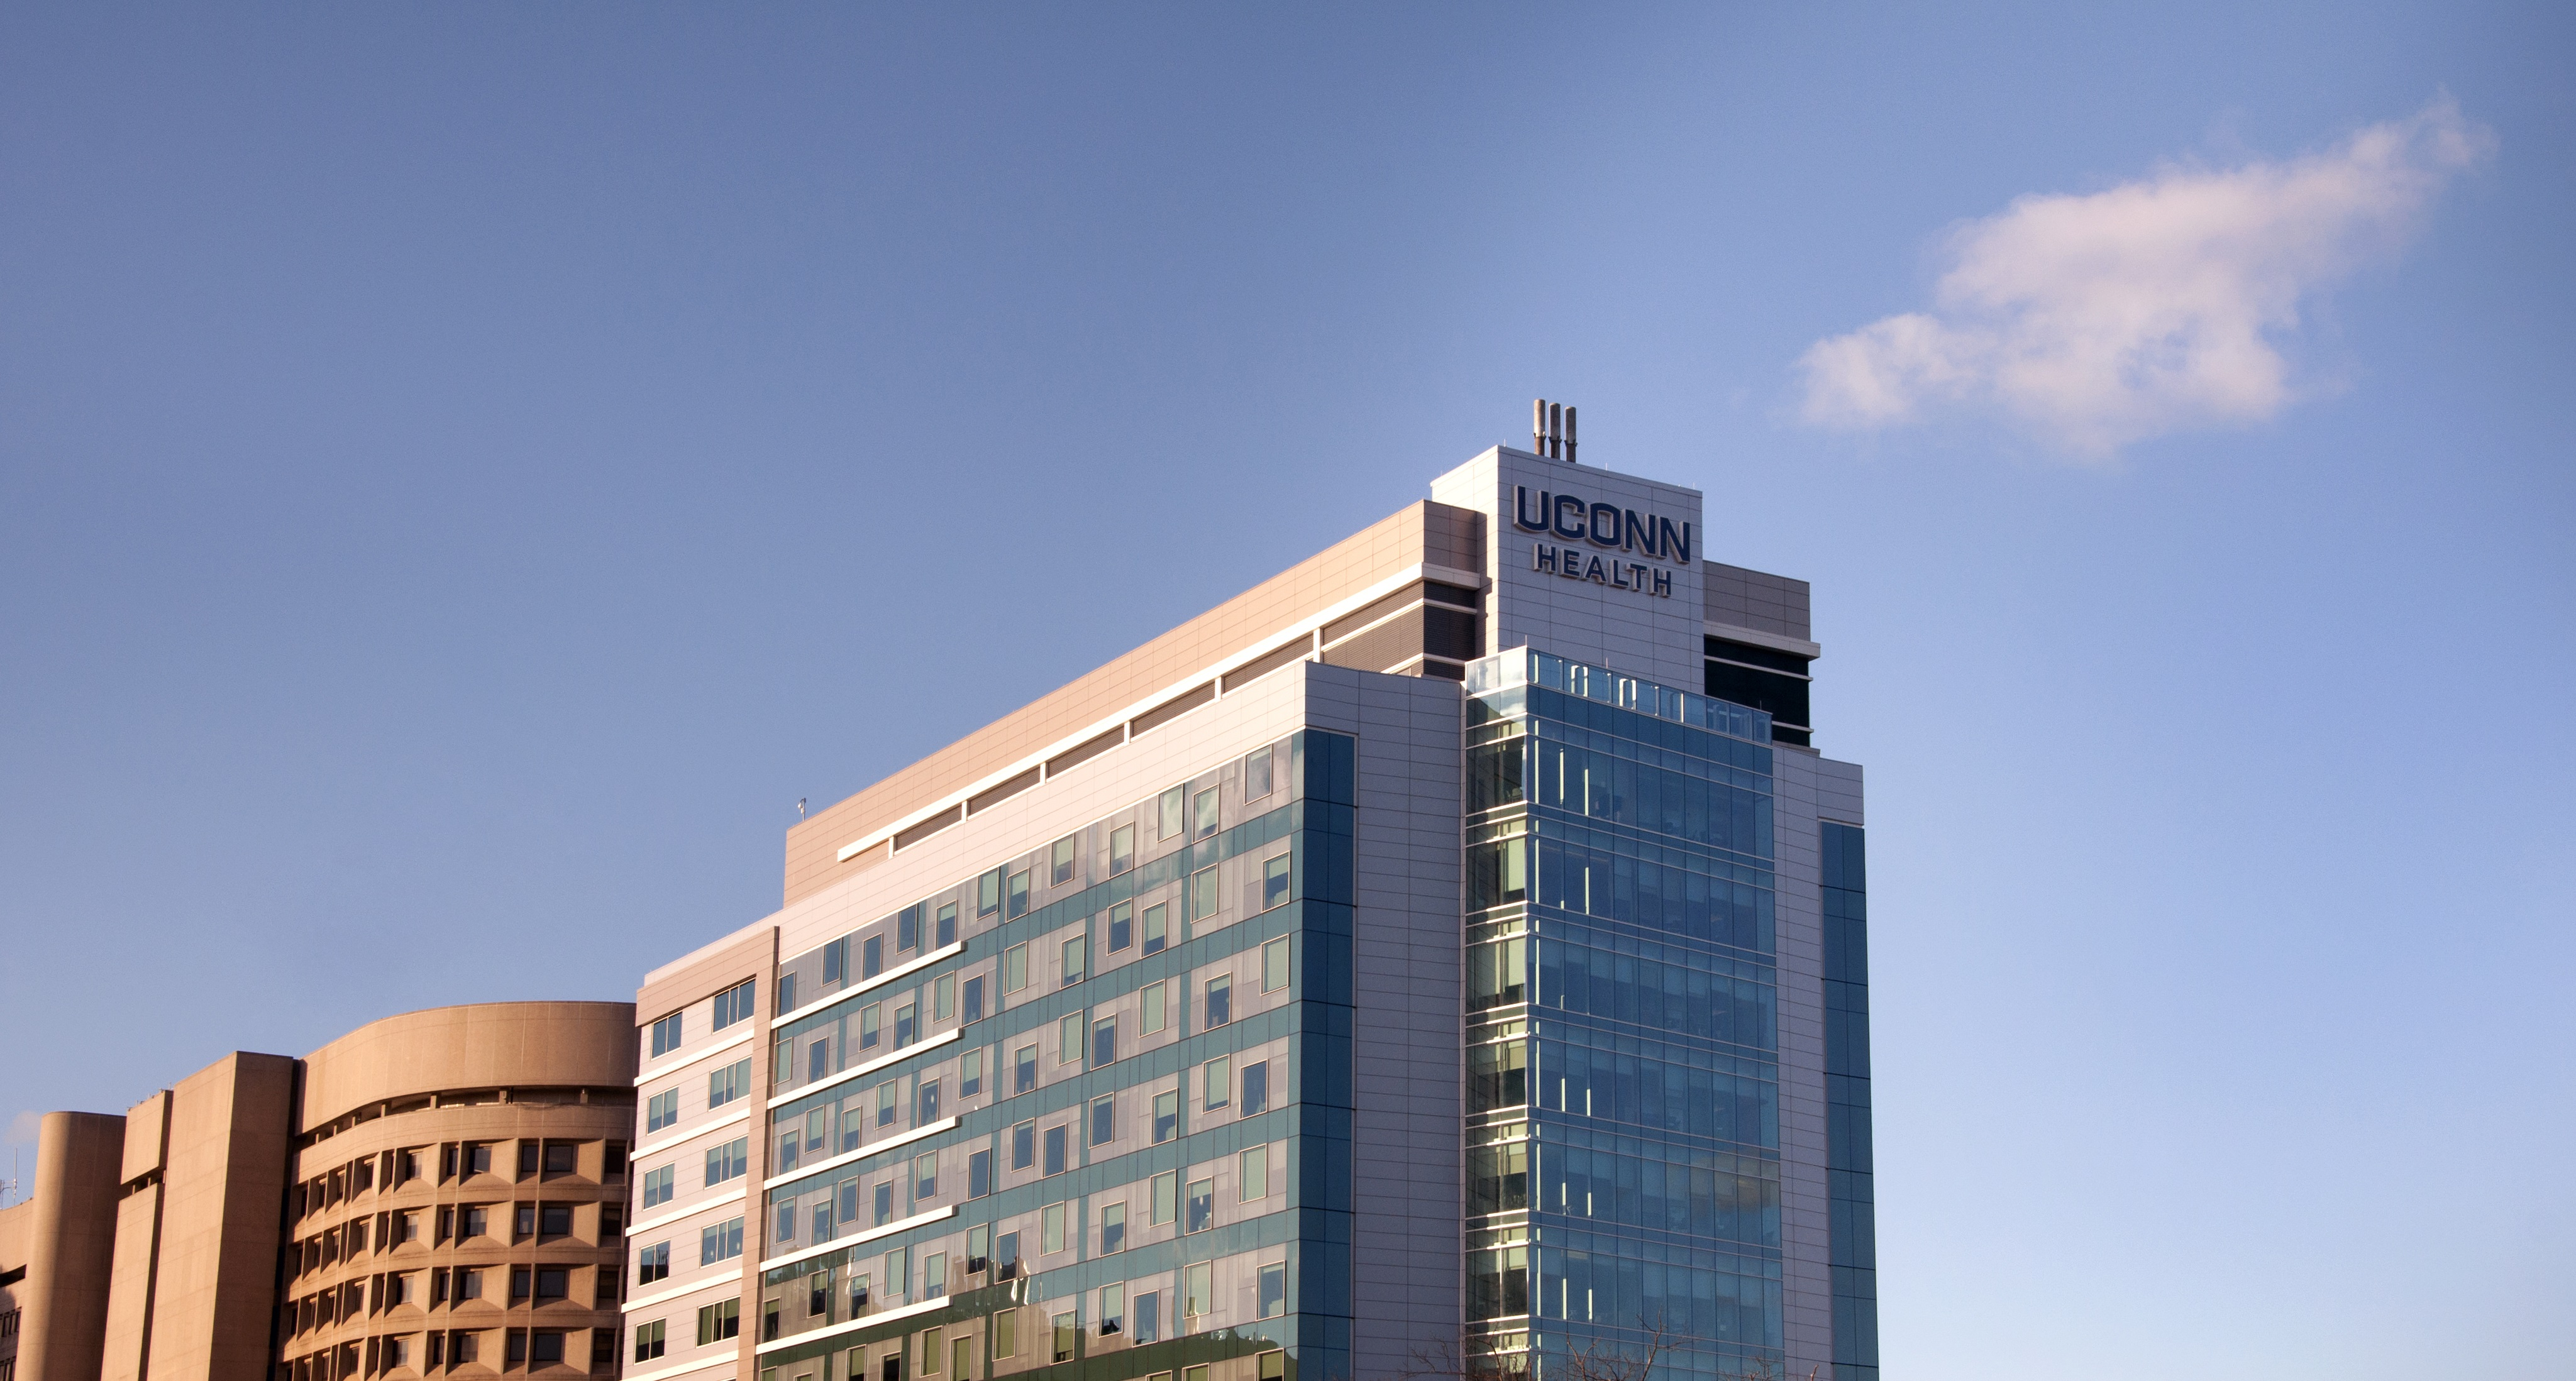 Consumer Reports has given UConn John Dempsey Hospital one of the highest patient safety scores in Connecticut (UConn Health Photo/Janine Gelineau).